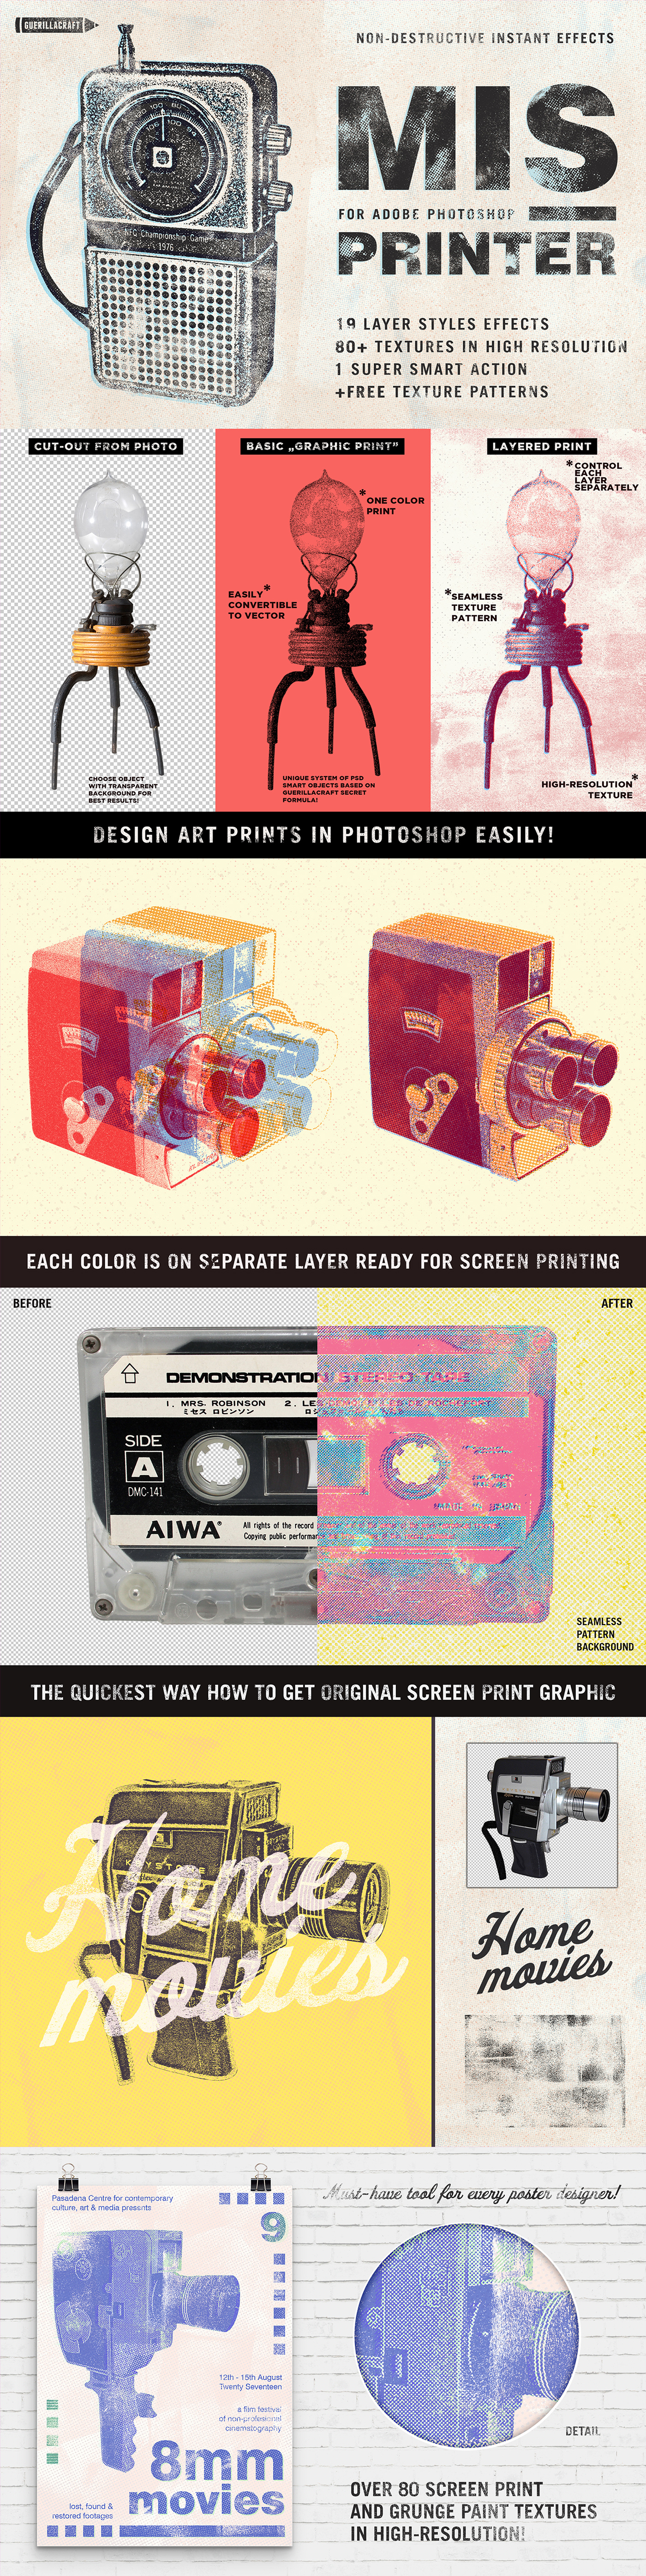 photoshop effects Retro vintage poster gig print freebie free textures photoshop actions